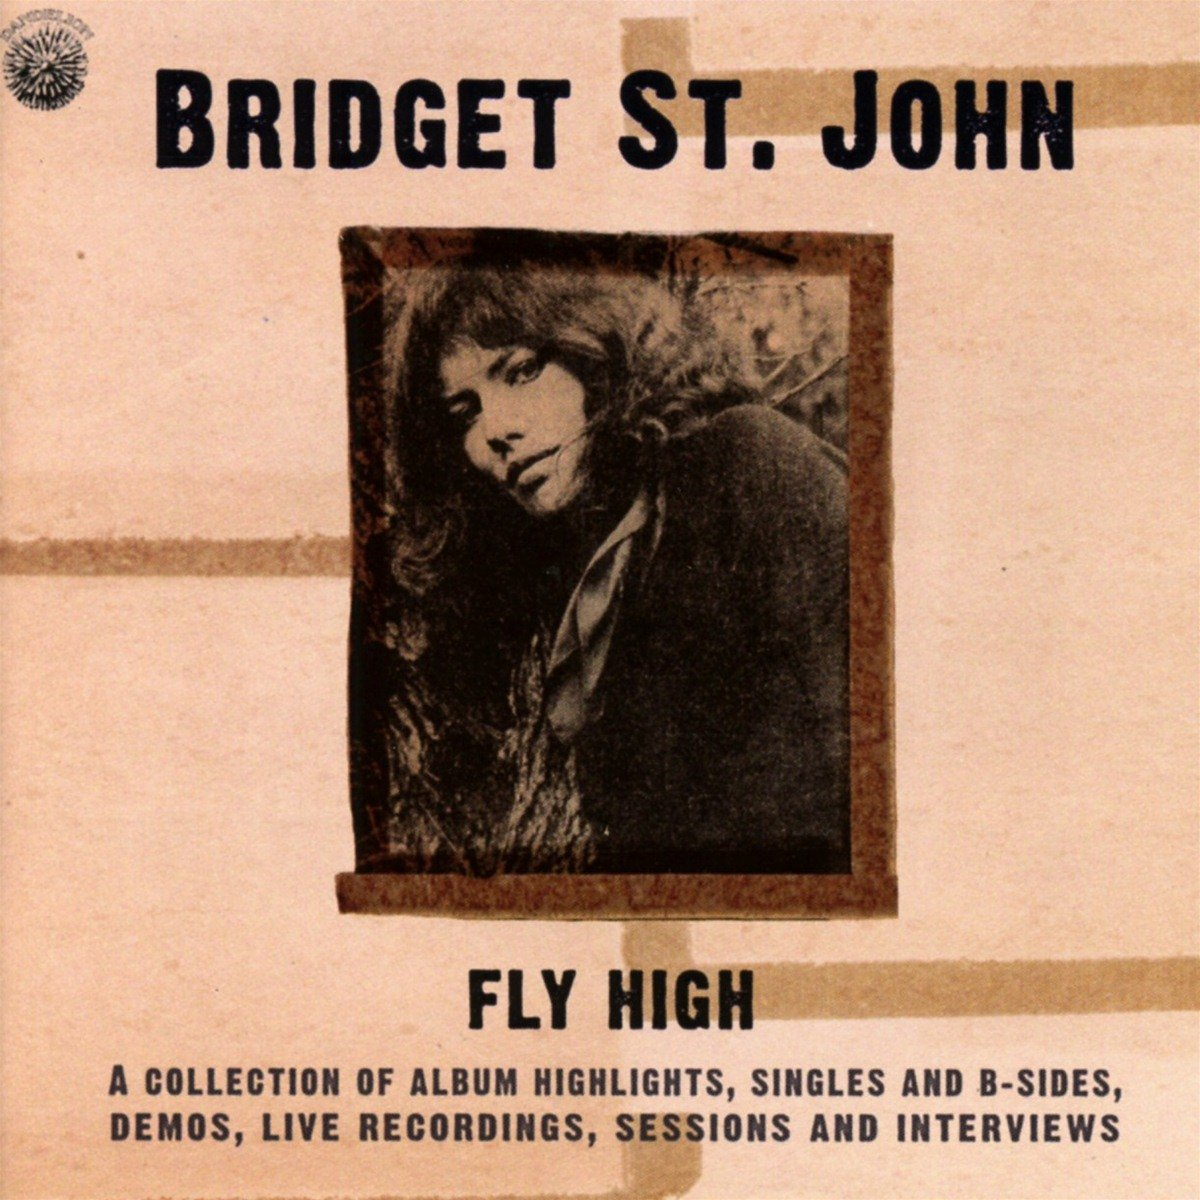 Fly High: A Collection Of Album Highlights, Singles And B-Sides, Demos, Live Recordings, Sessions And Interviews